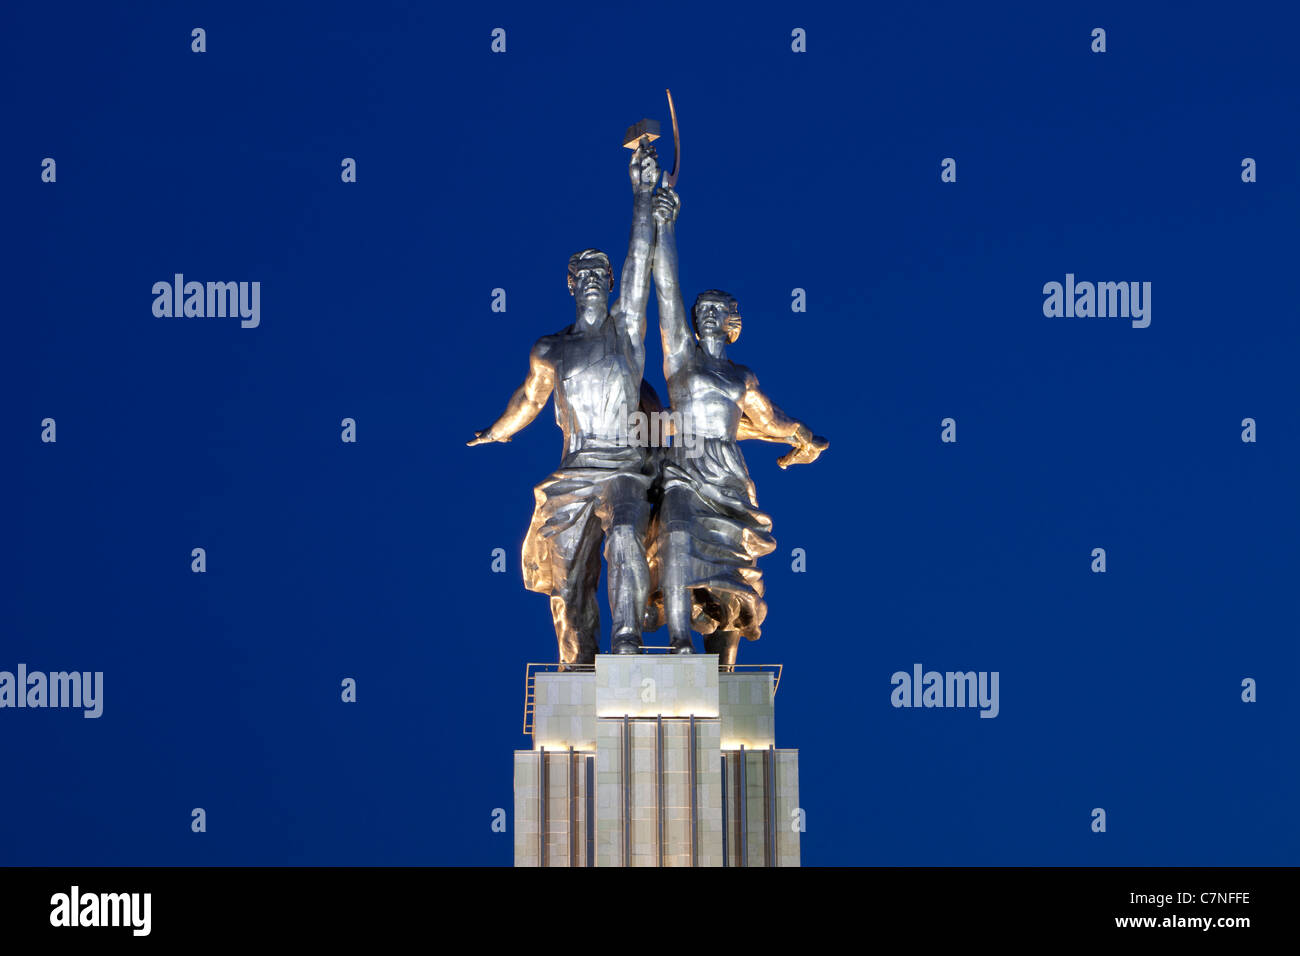 Worker and Collective Farmer monument (logo of the Mosfilm studio) in Moscow, Russia - Stock Image